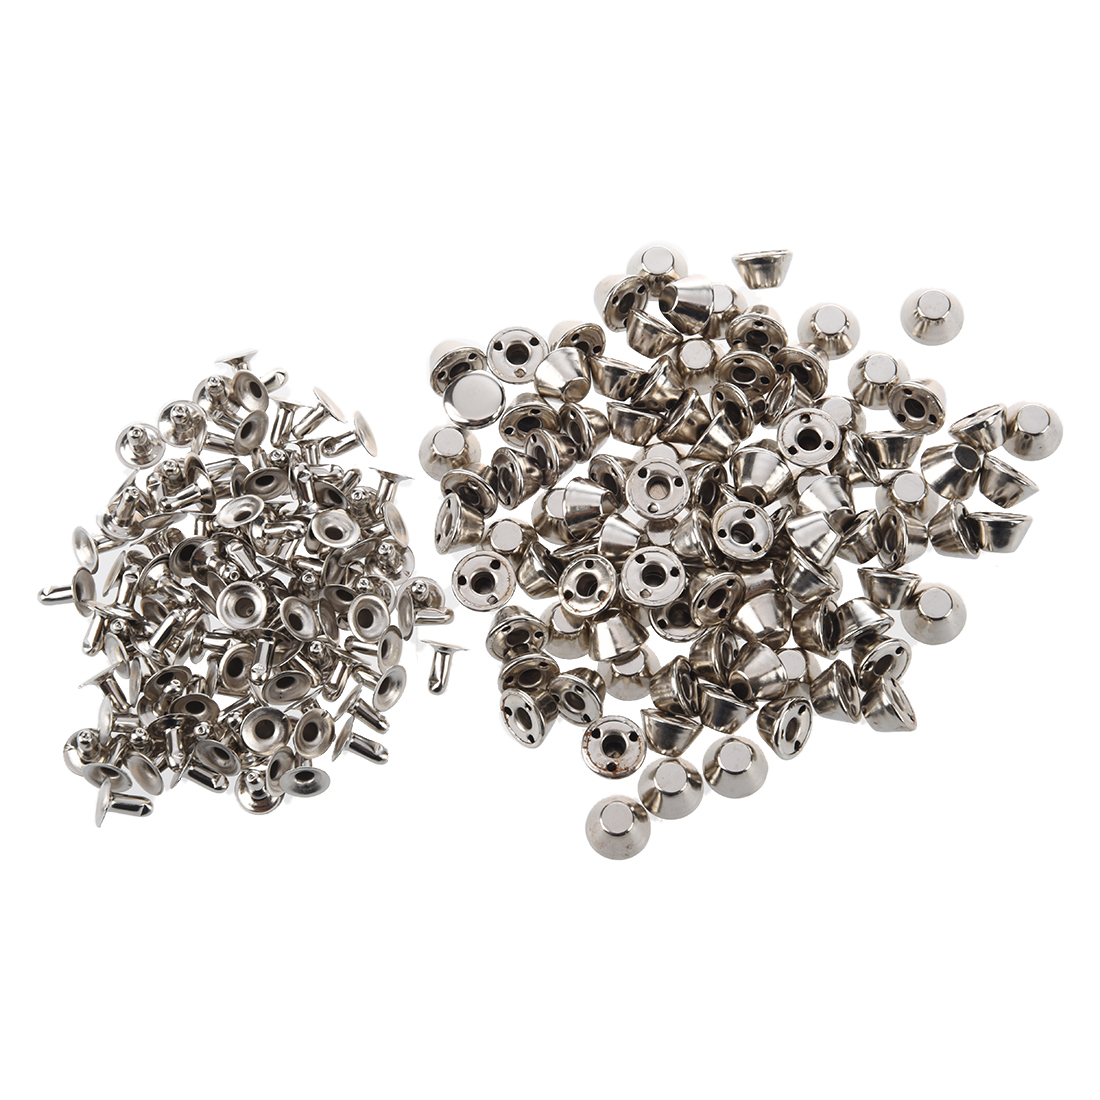 100pcs Double Cap Snap Rivet Studs Nailhead Buttons Bag Cloth Accessories DIY